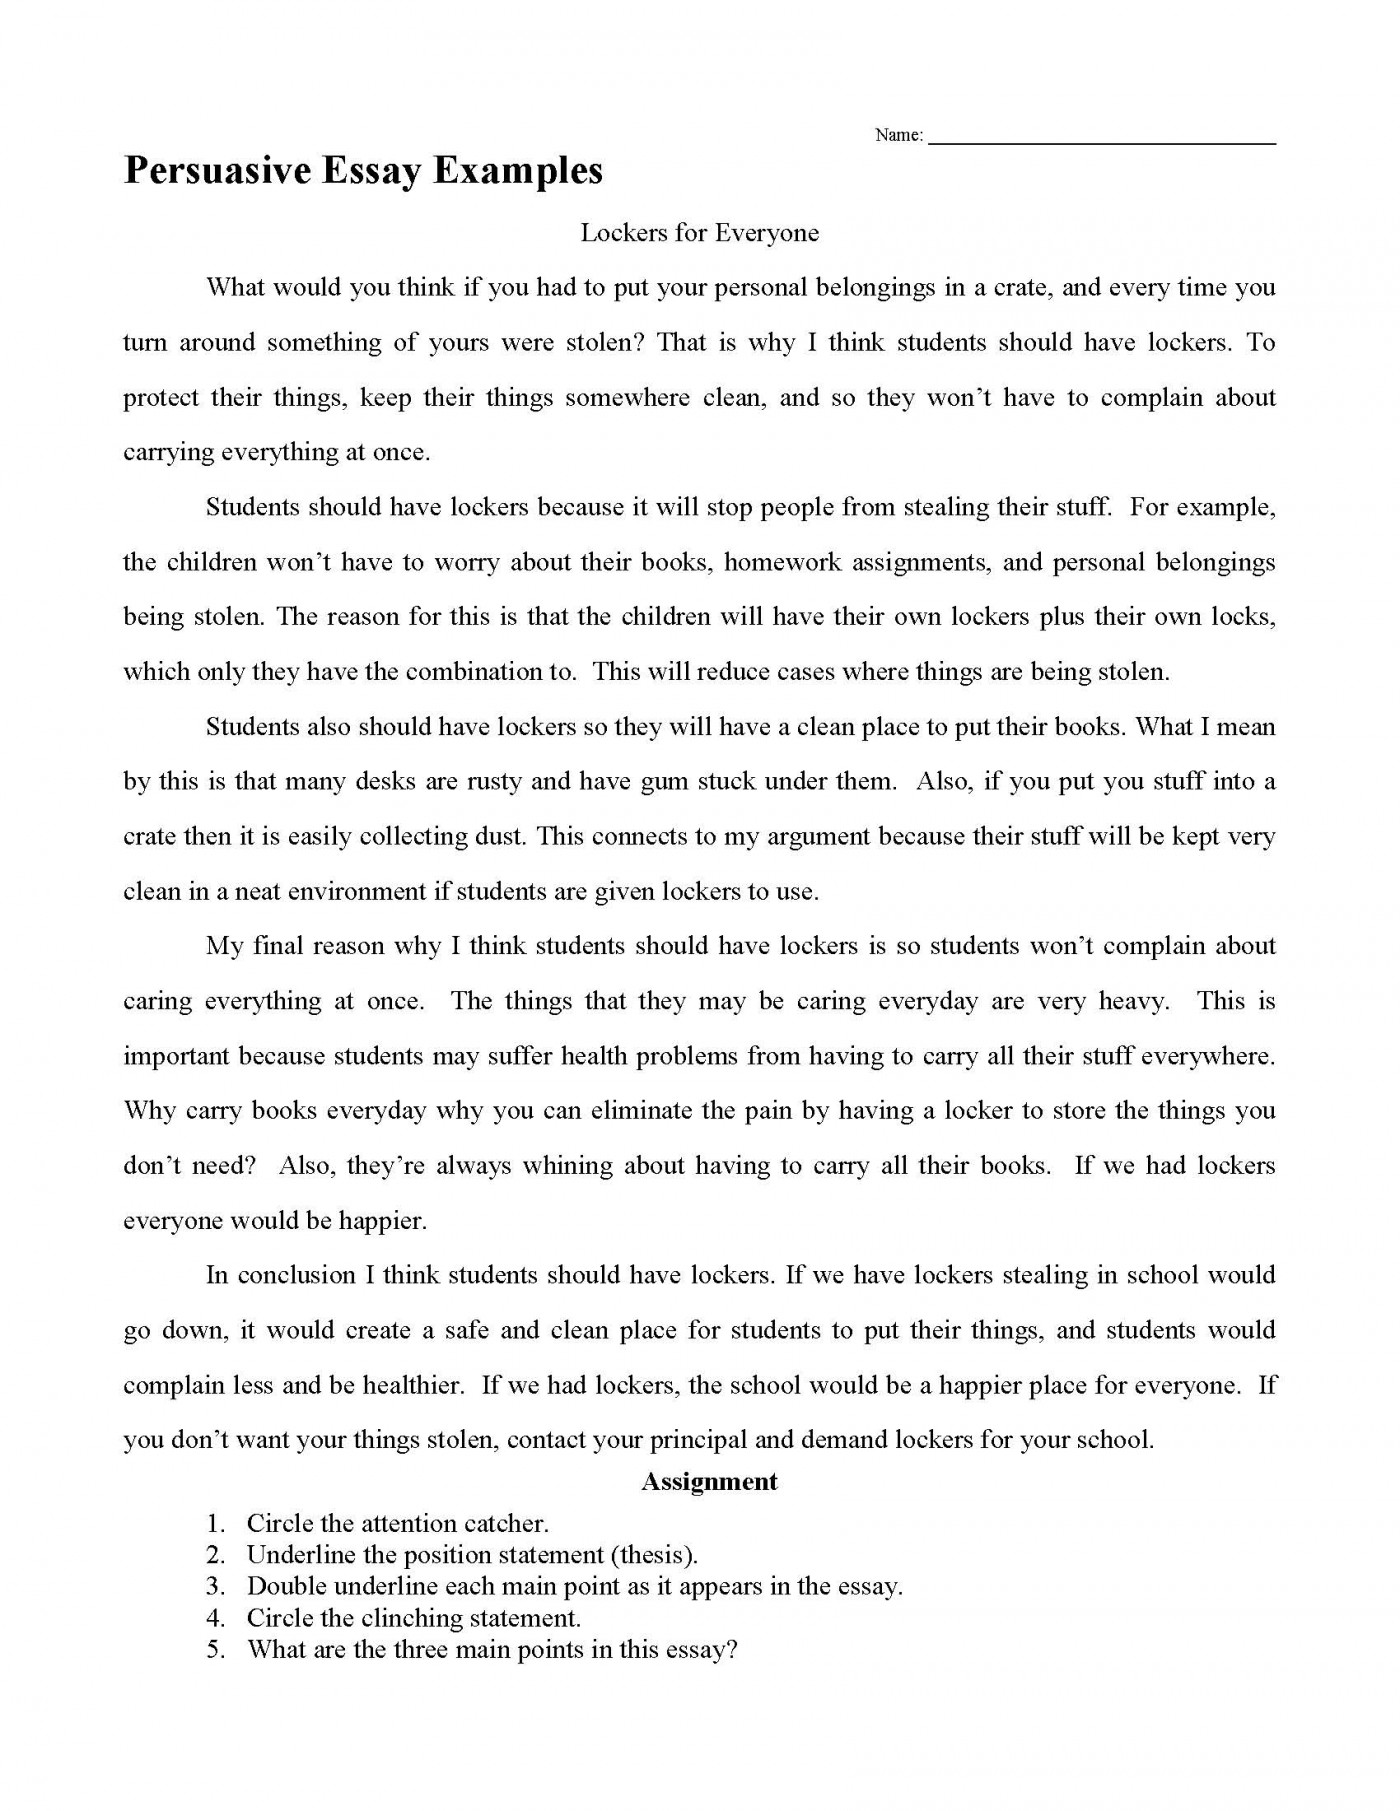 003 Essay Example Persuasive Examples Impressive Sample For 4th Grade 6 Topics 1400